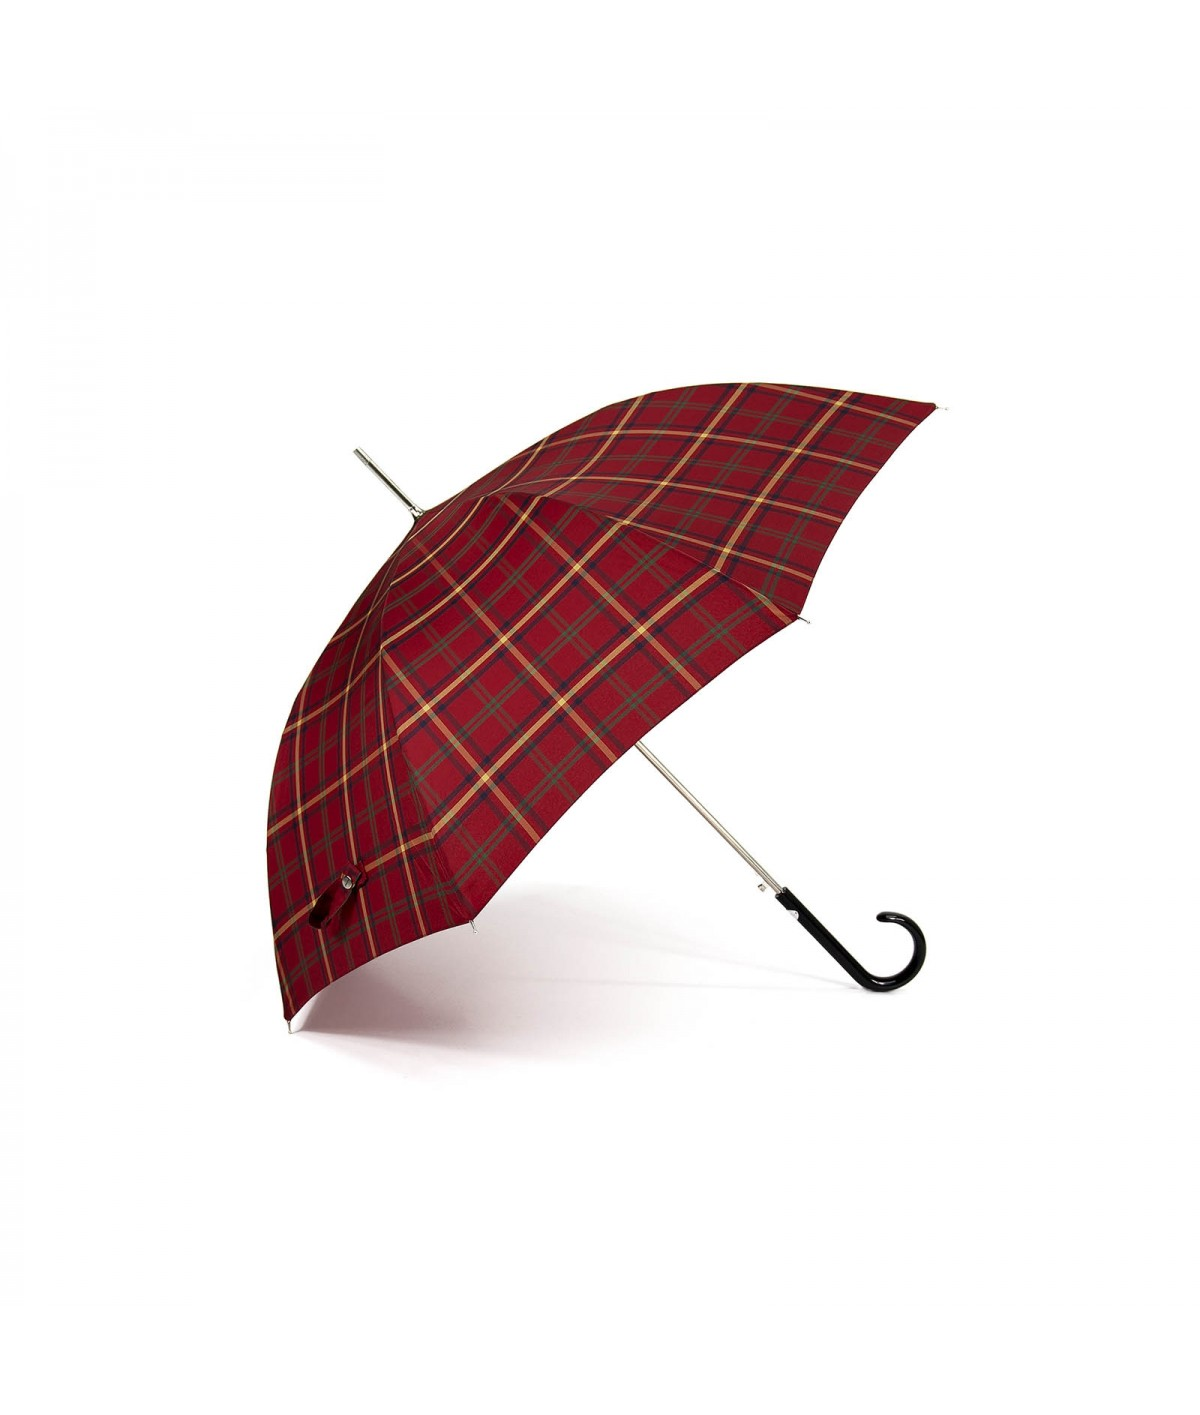 "→ Umbrella ""Scottish"" N°3 - Long Automatic - Made in France by Maison Pierre Vaux Umbrella Manufacturer since 1920"